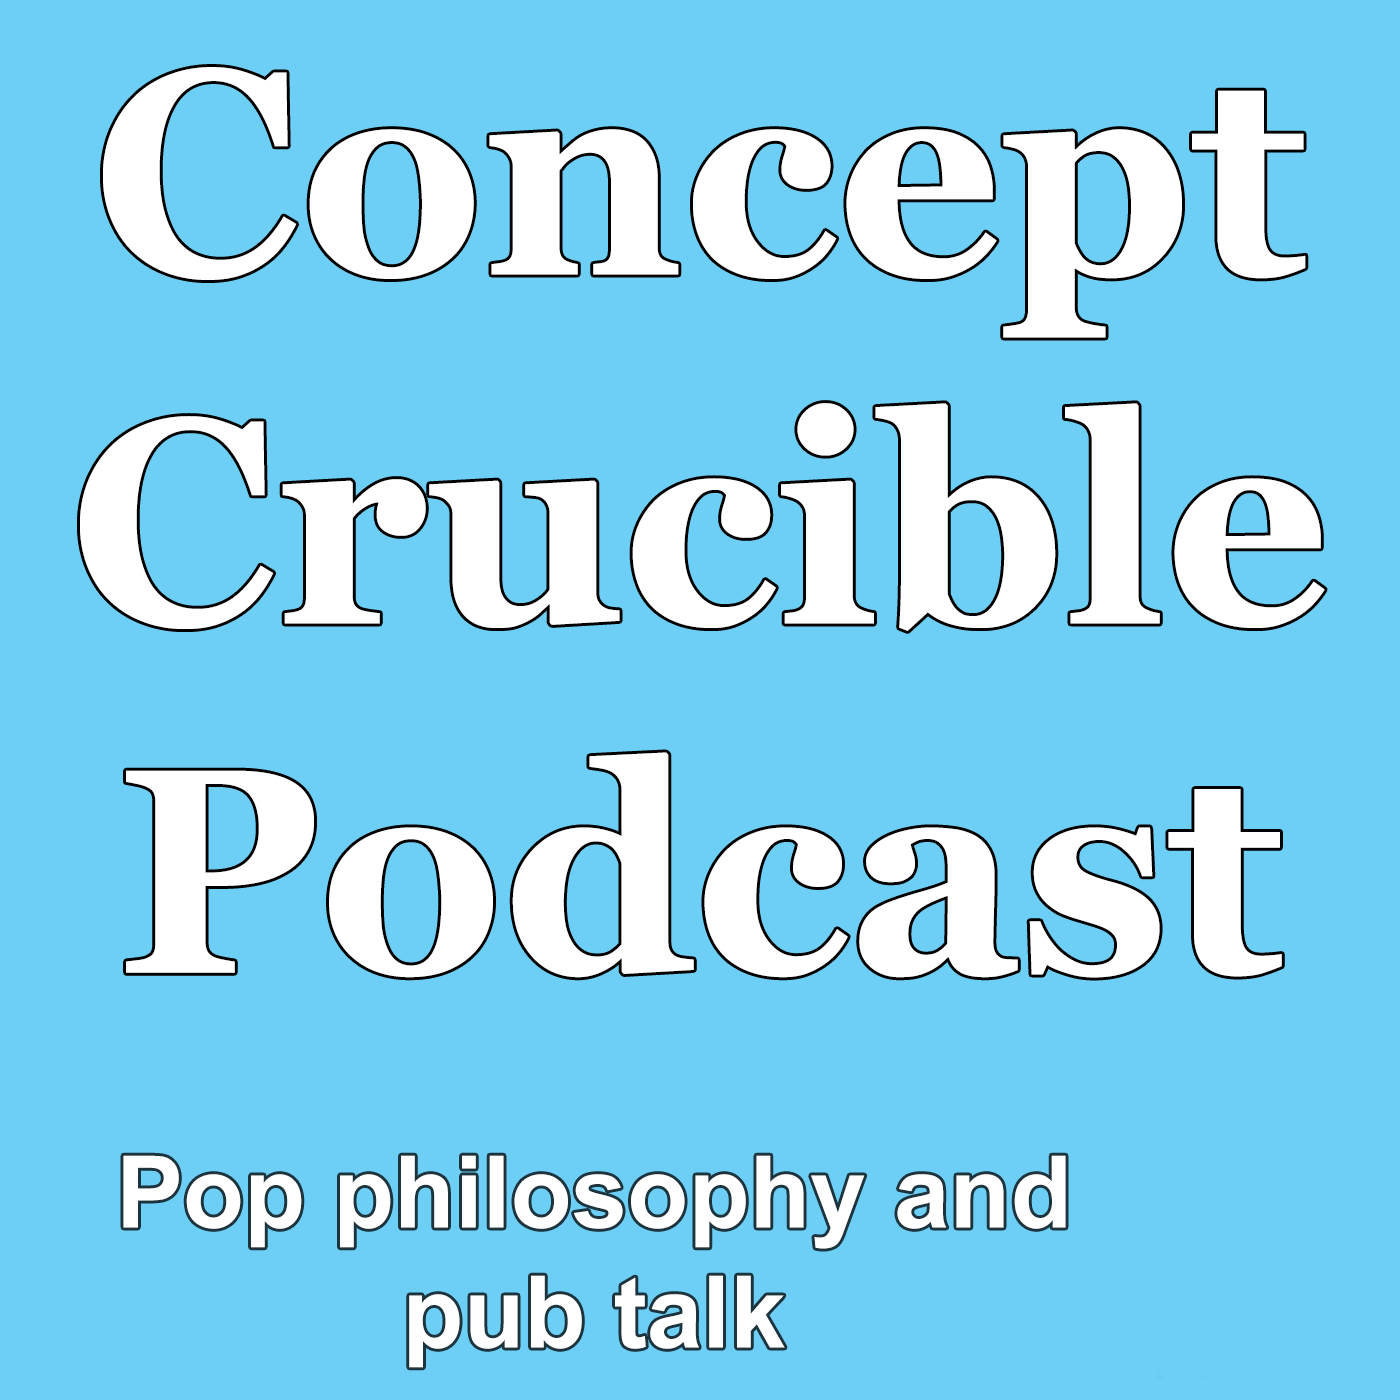 Concept Crucible, a philosophy blog and podcast